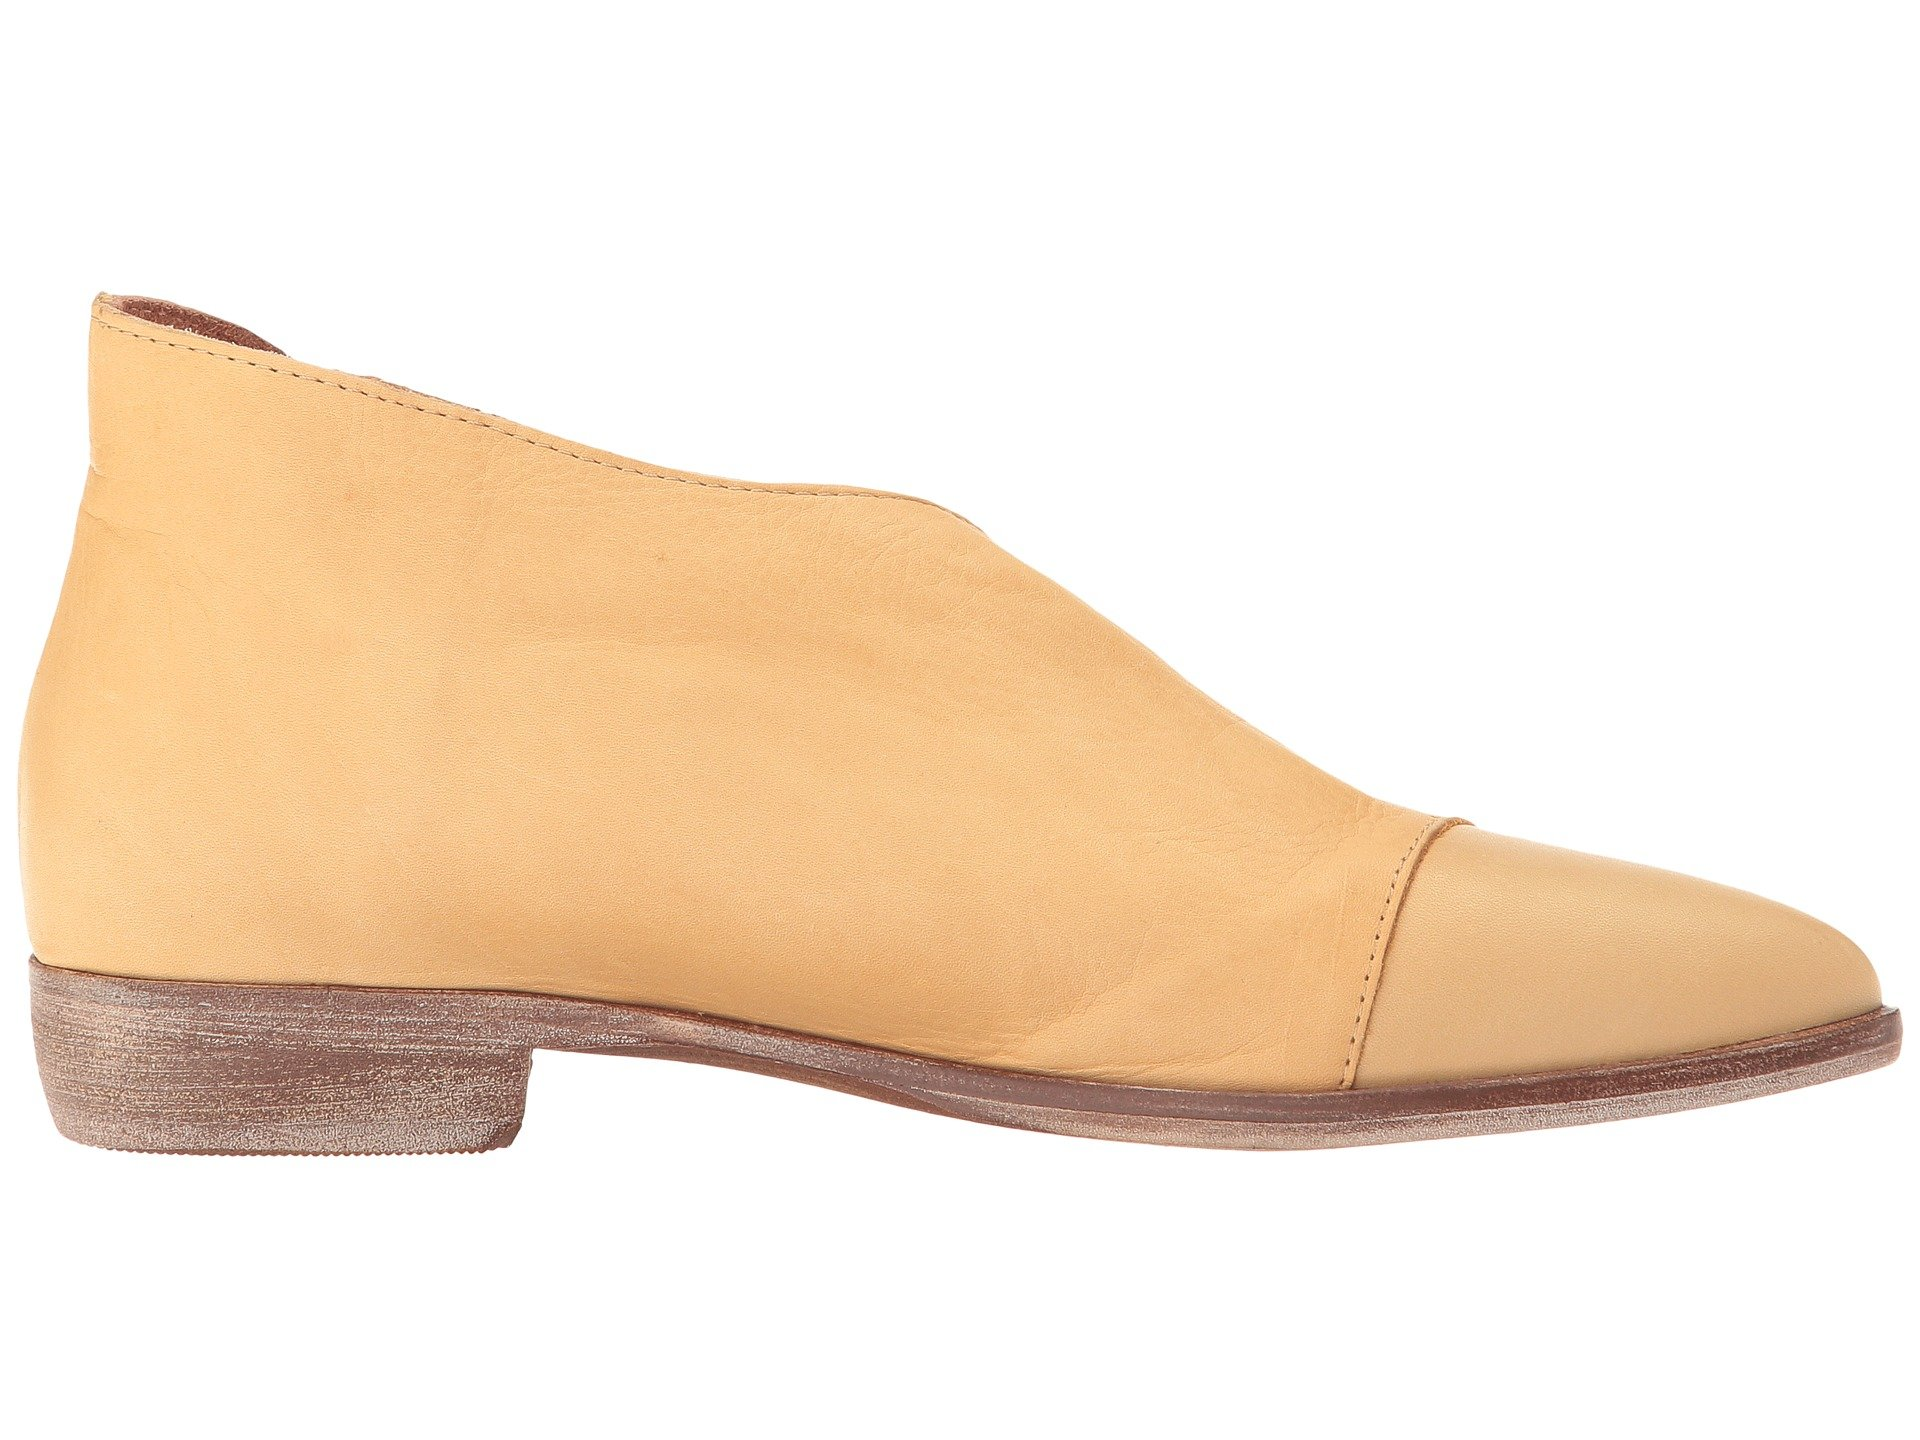 Free People Royale Flat (38 M EU) by Free People (Image #8)